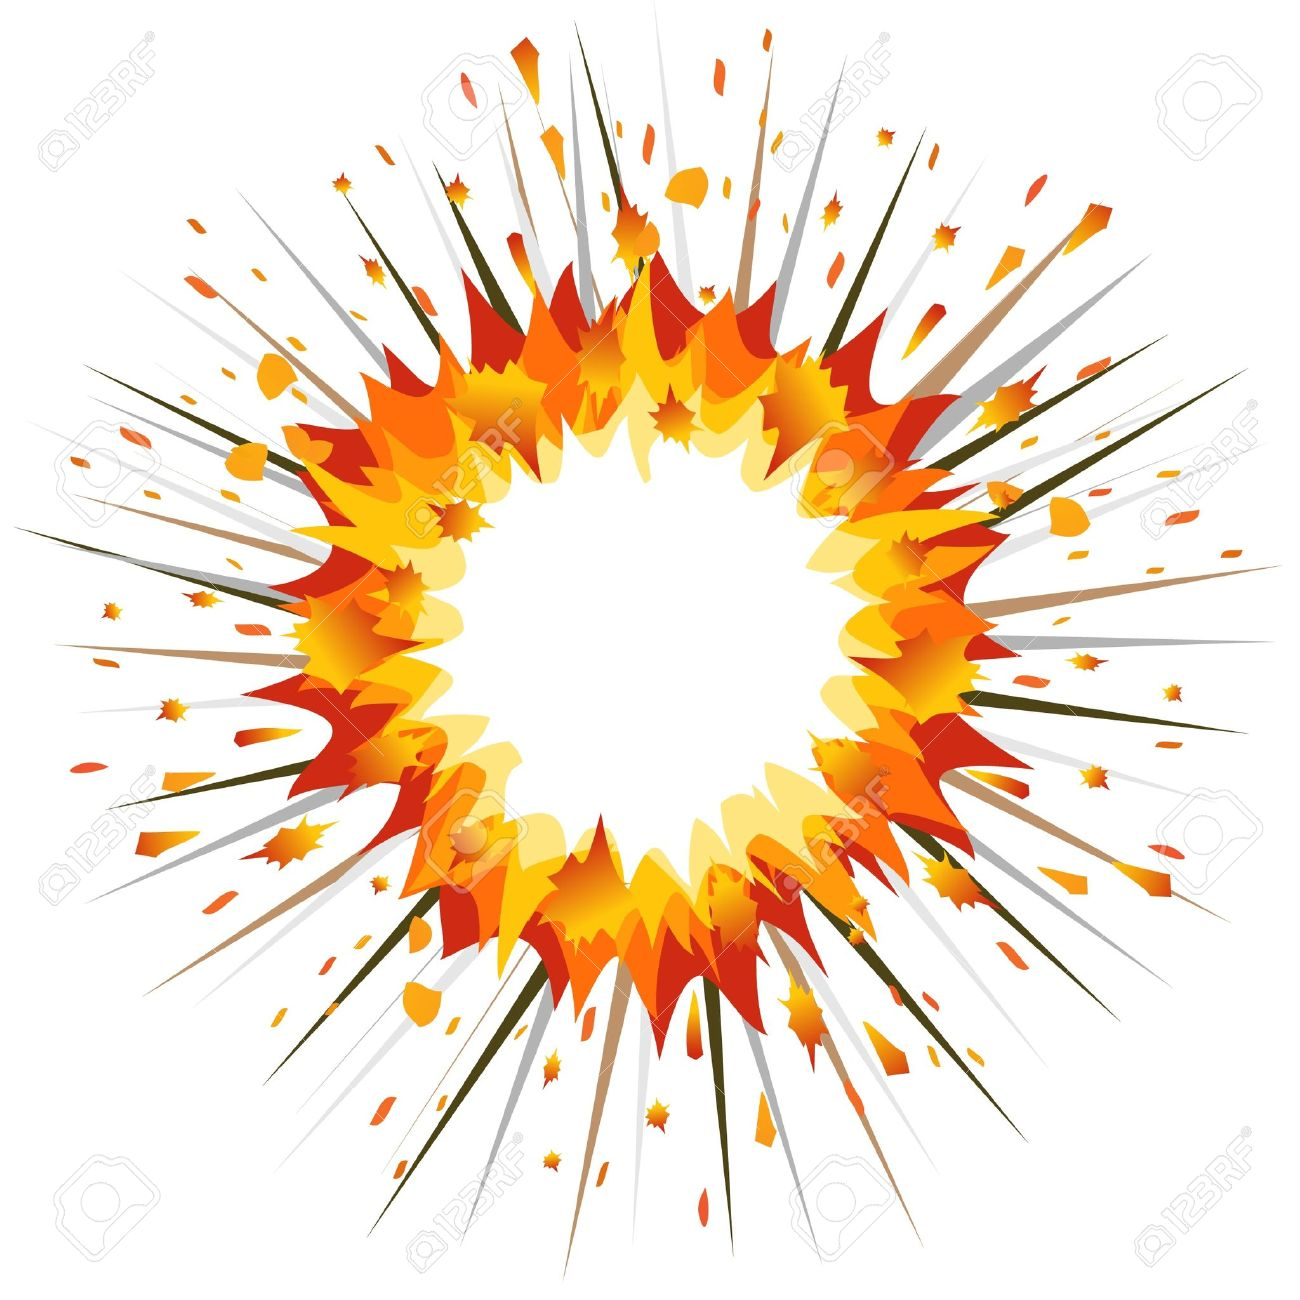 Image of blast clipart 6 cartoon explosion clipart free clip.